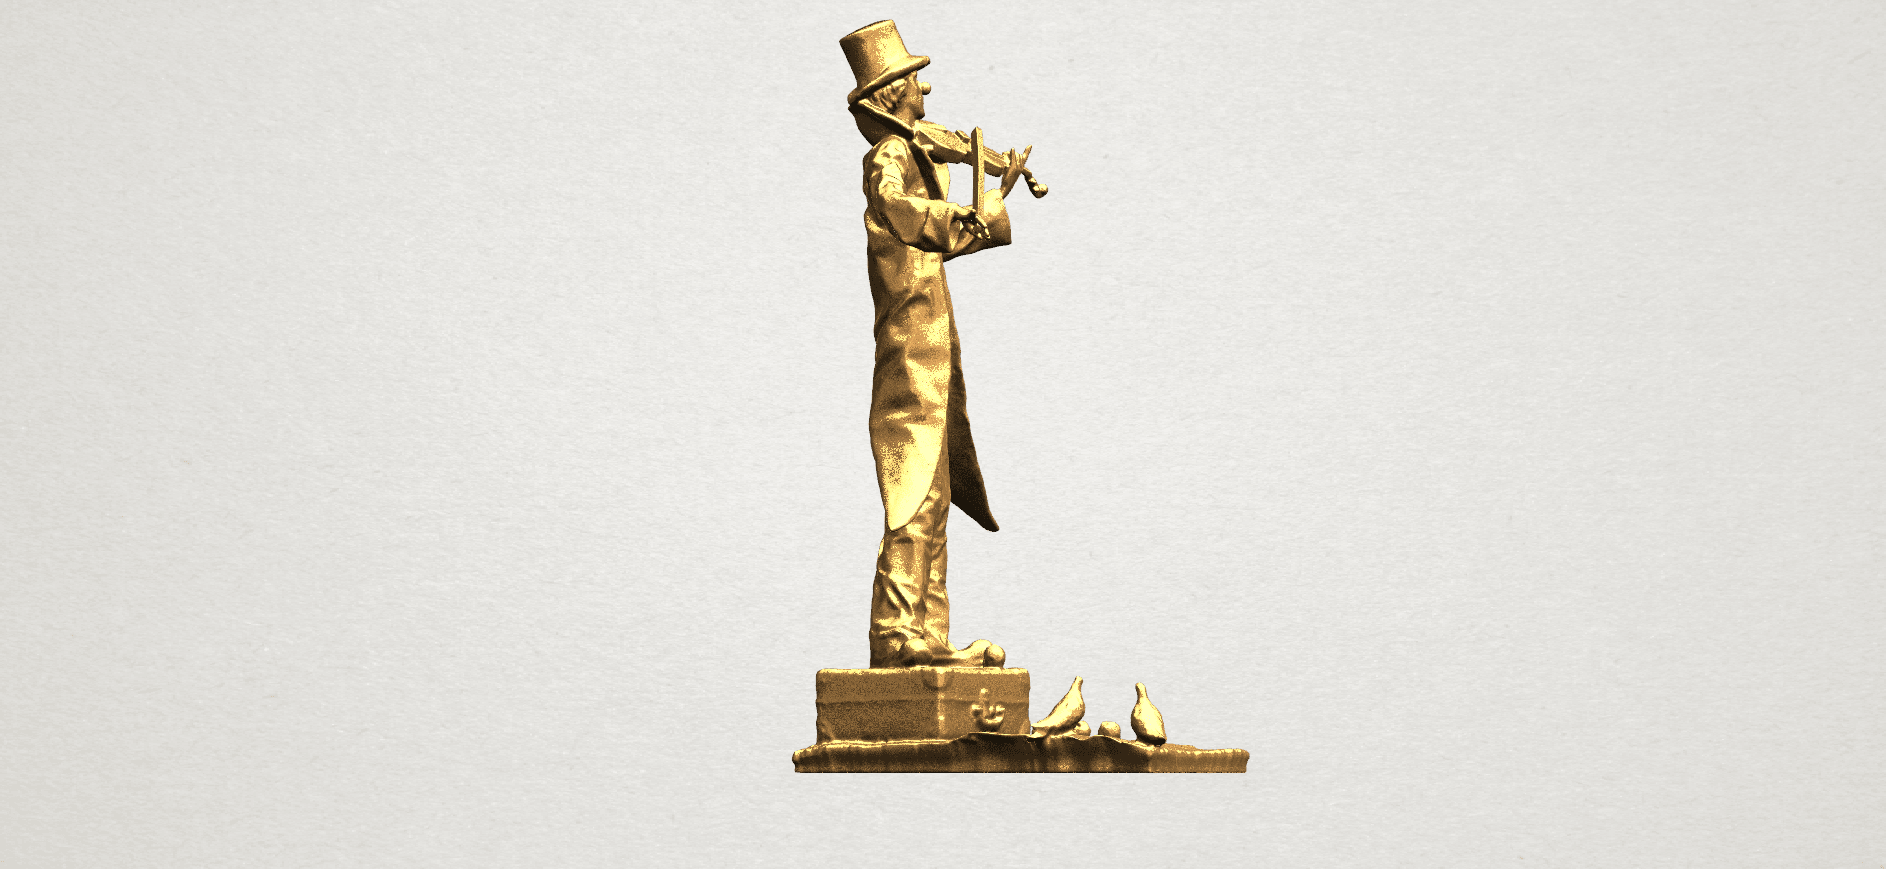 Play Violin A07.png Download free STL file Play Violin • 3D printable model, GeorgesNikkei